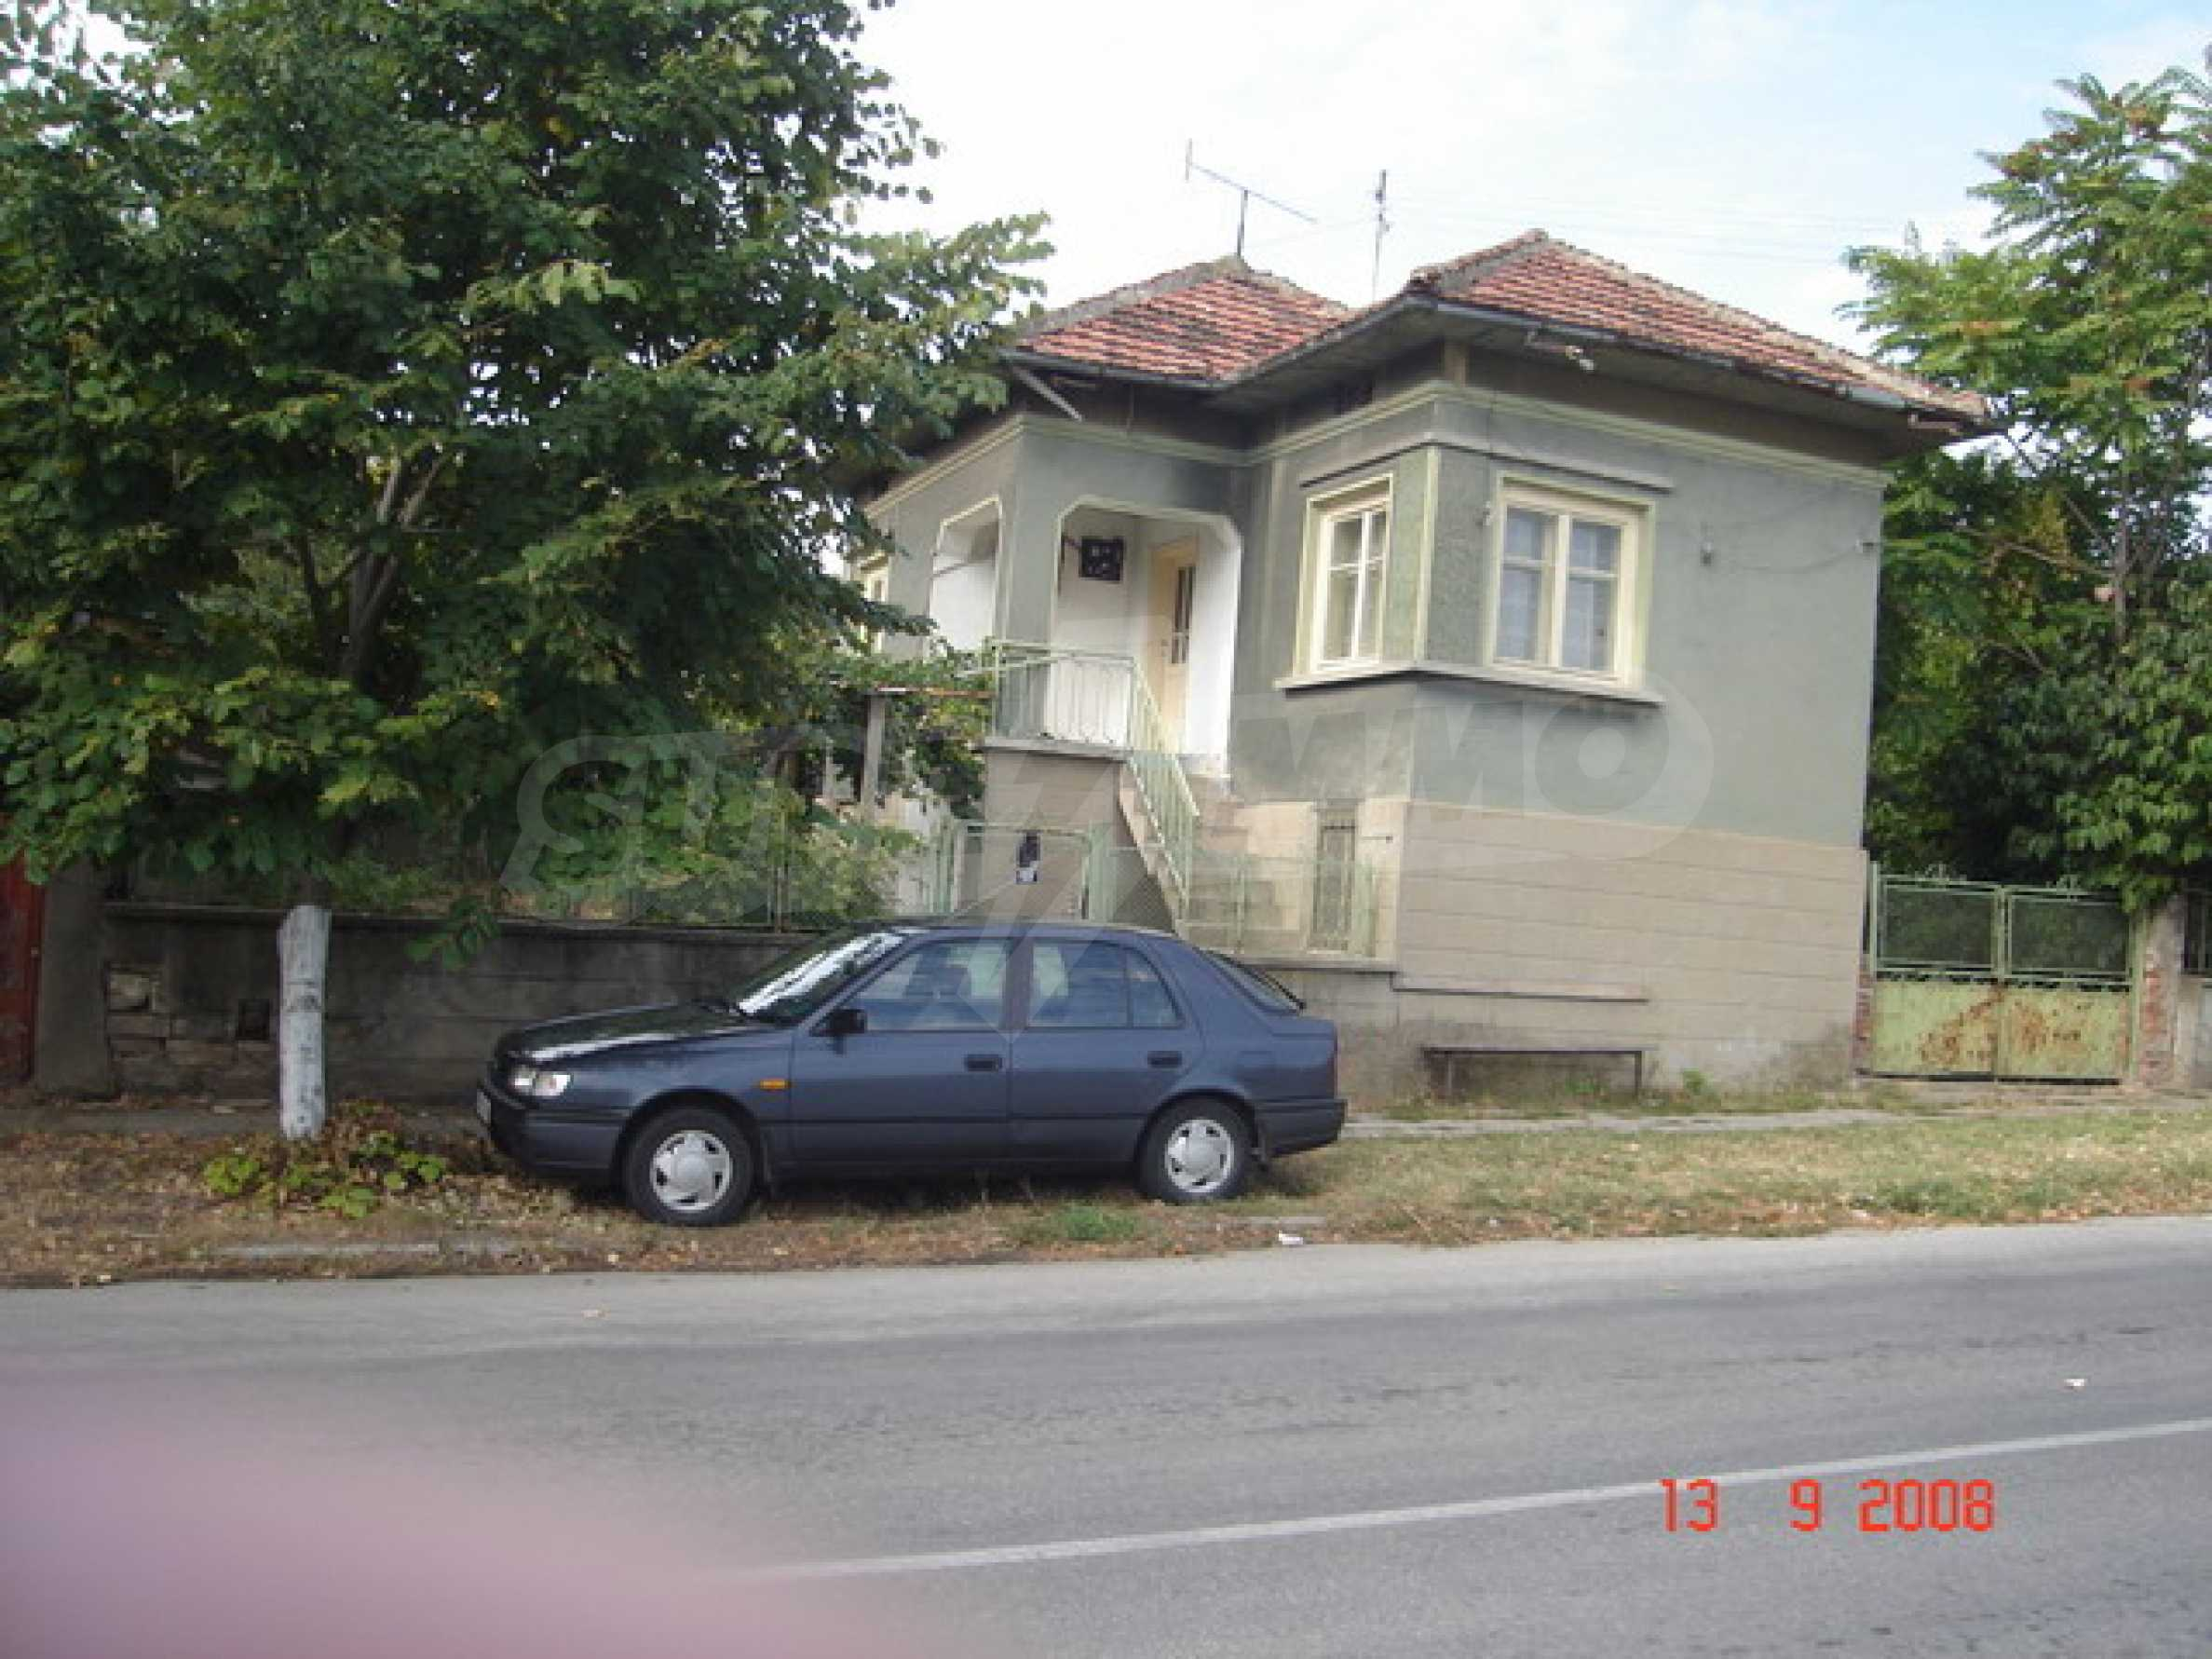 House near the Danube river